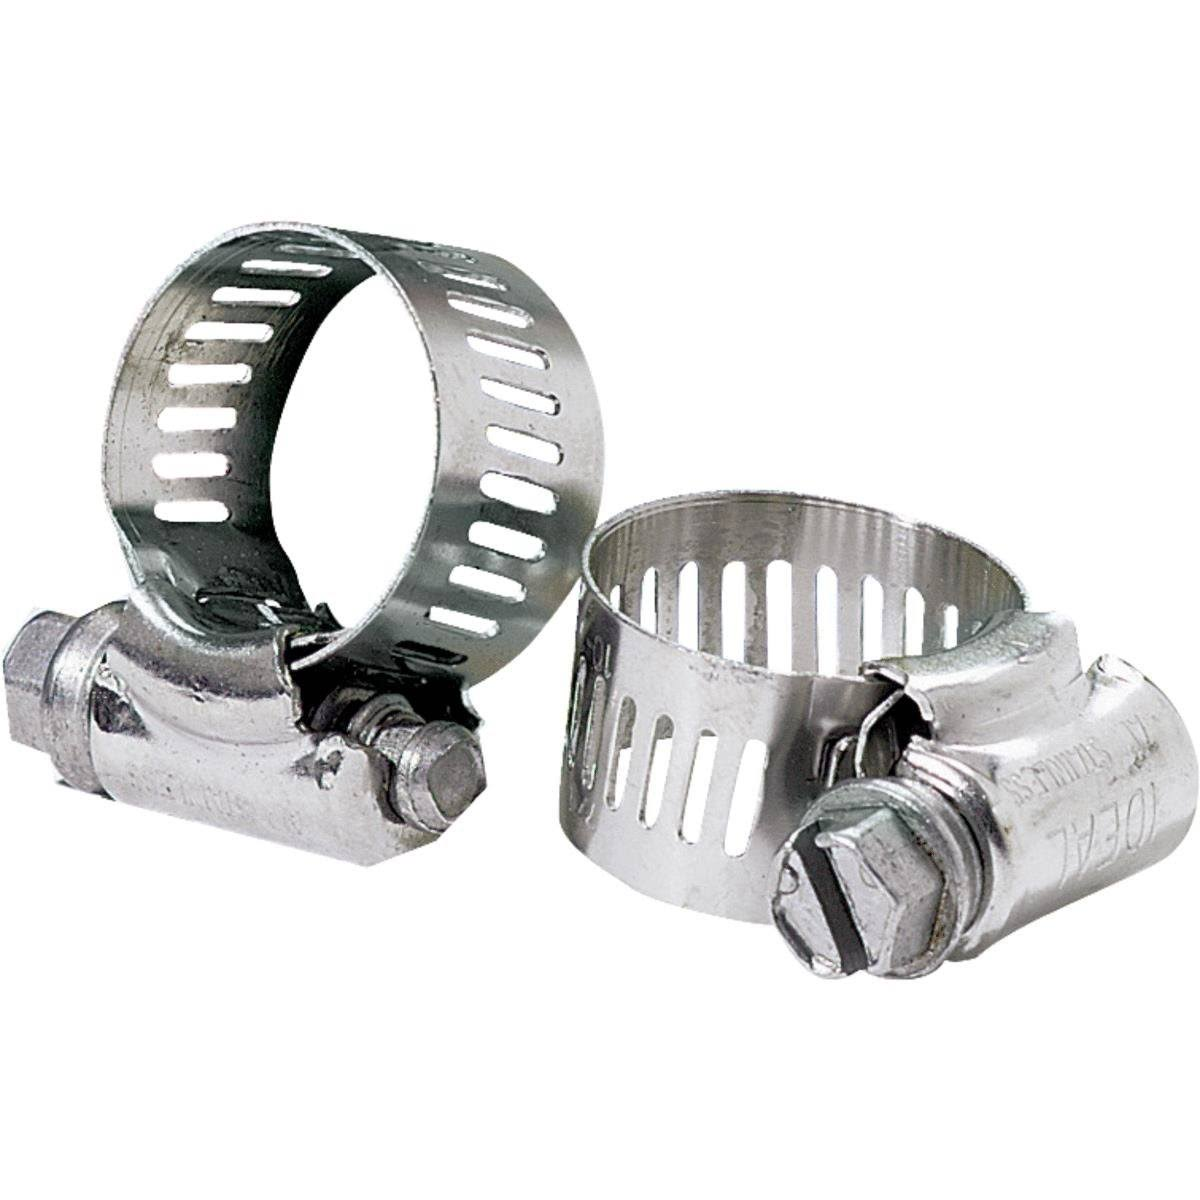 Ideal Series Worm Gear Hose Clamp - Stainless Steel